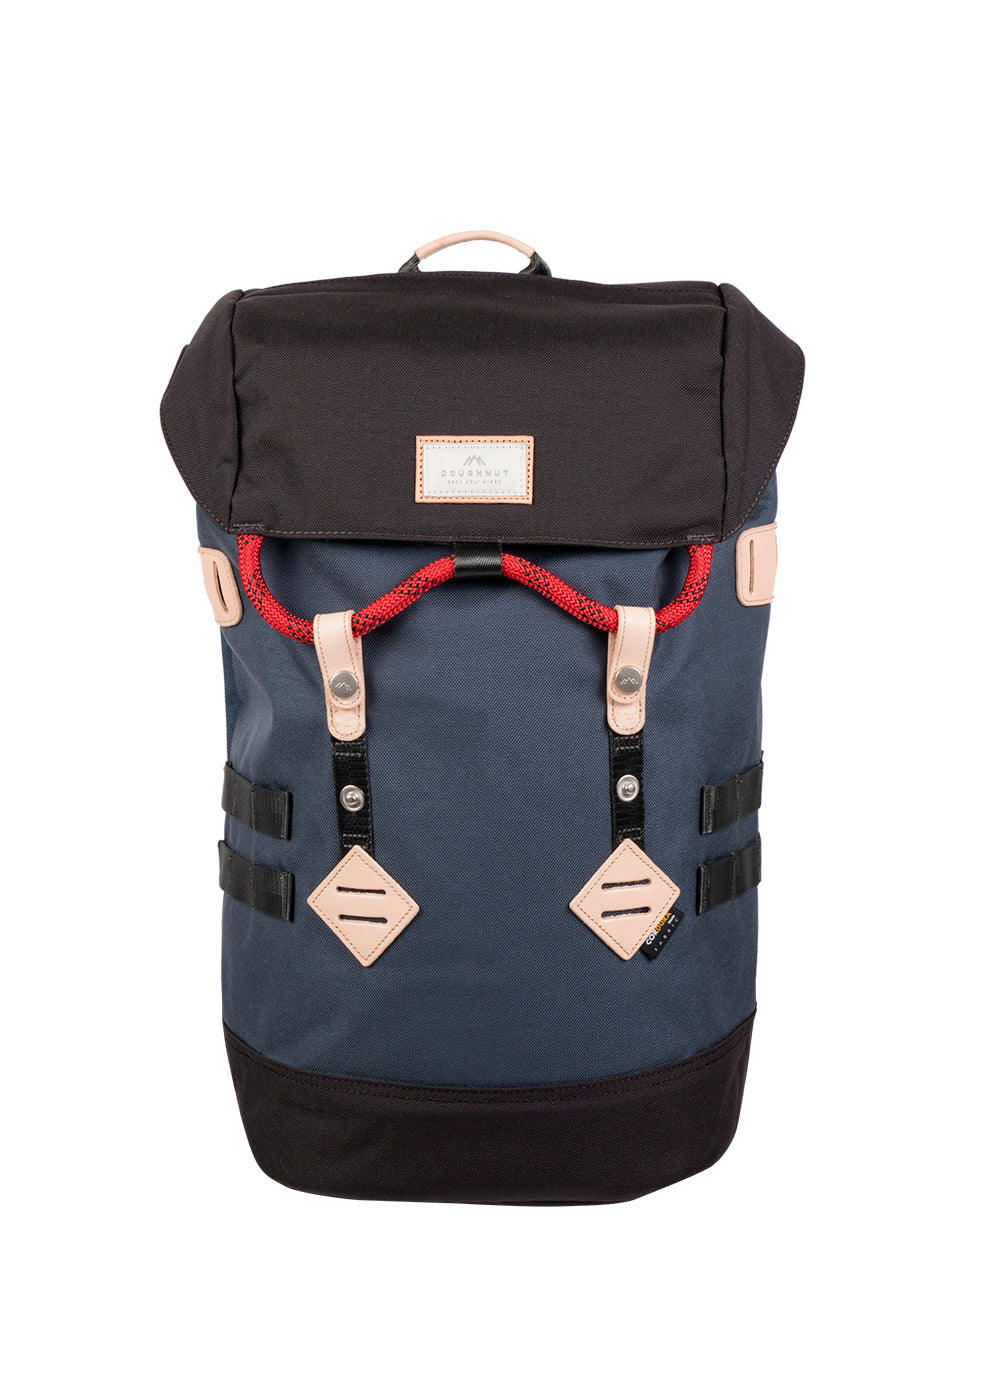 COLORADO CORDURA Slate Blue x Charcoal